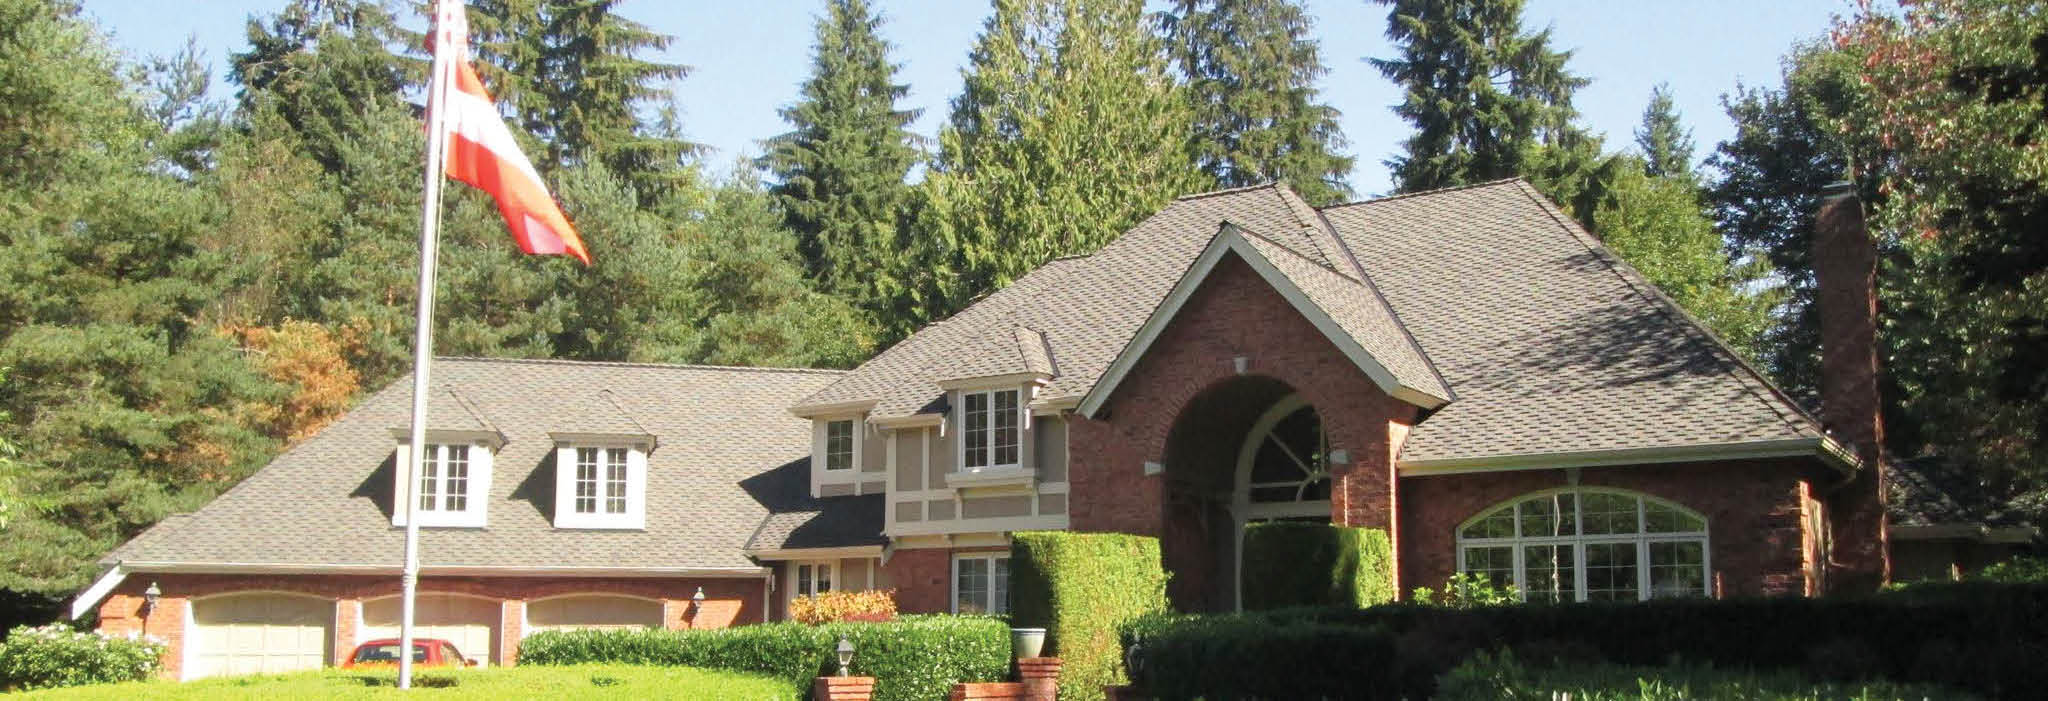 North Creek Roofing main banner image - Mill Creek, WA